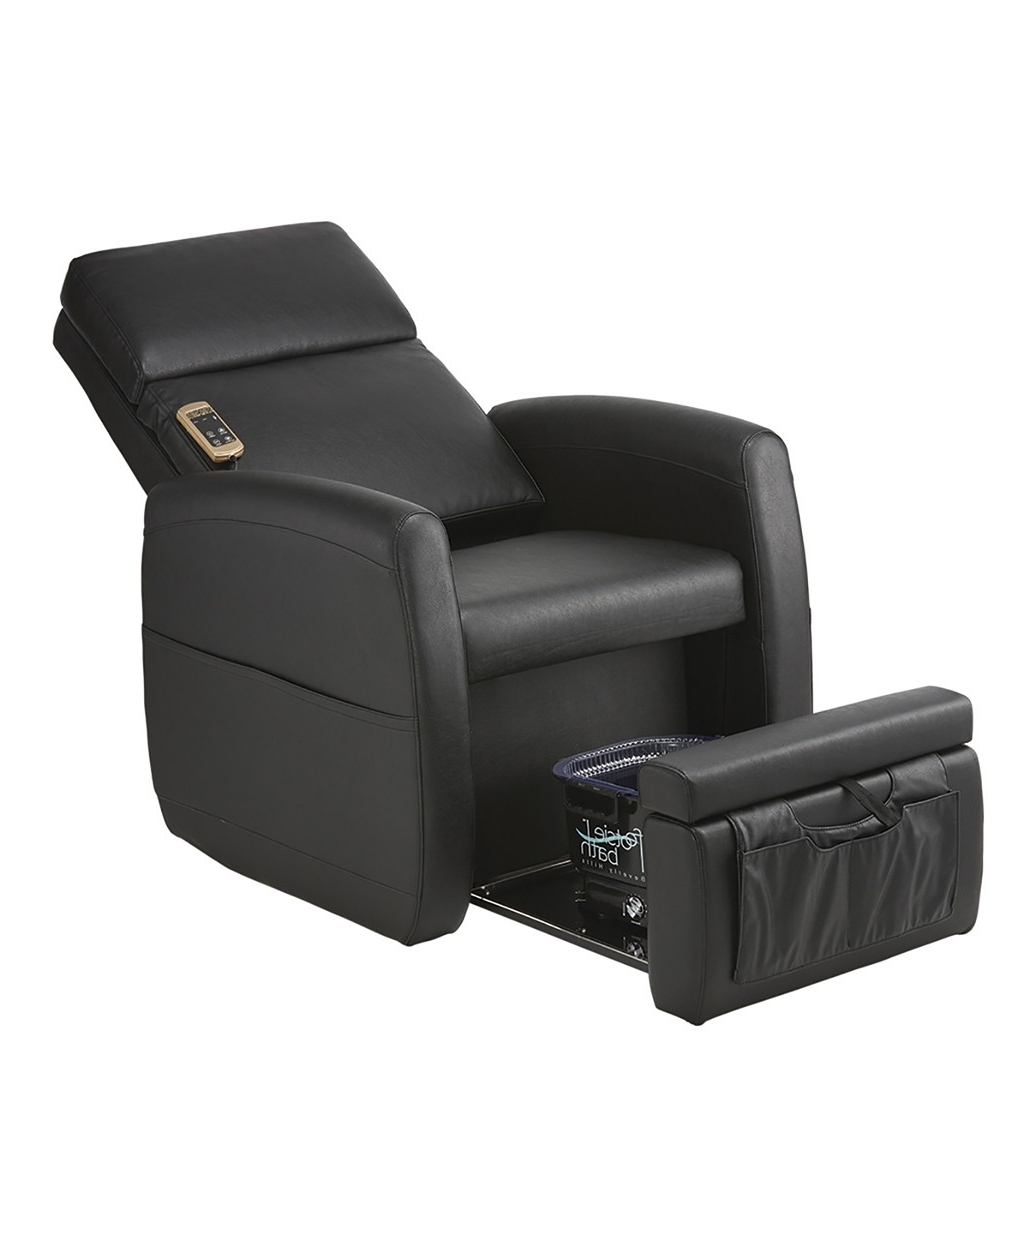 Well Liked Sofa Pedicure Chairs In Pibbs Ps9 Plumbing Free Massage Pedicure Chair: Buy Rite (View 6 of 15)